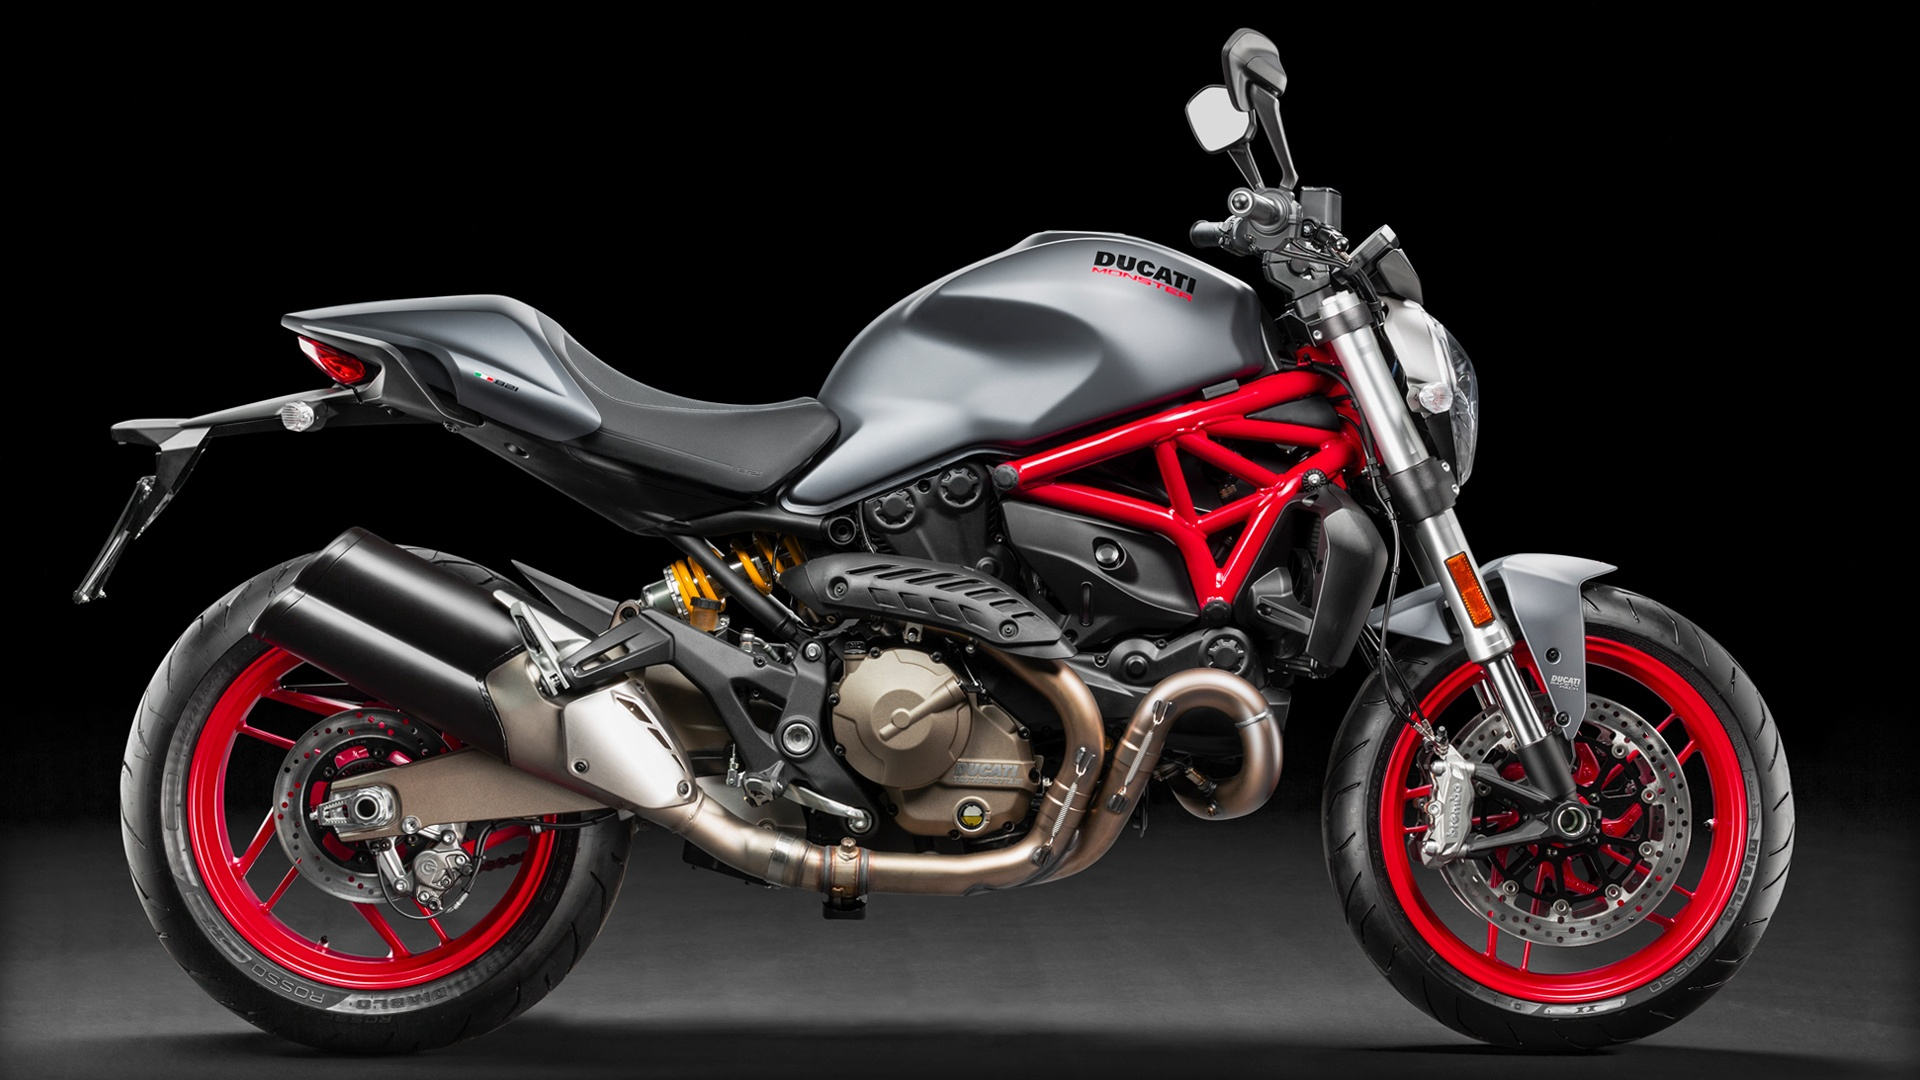 2017 Ducati Monster 821 for sale at Ducati Preston, Lancashire, Scotland